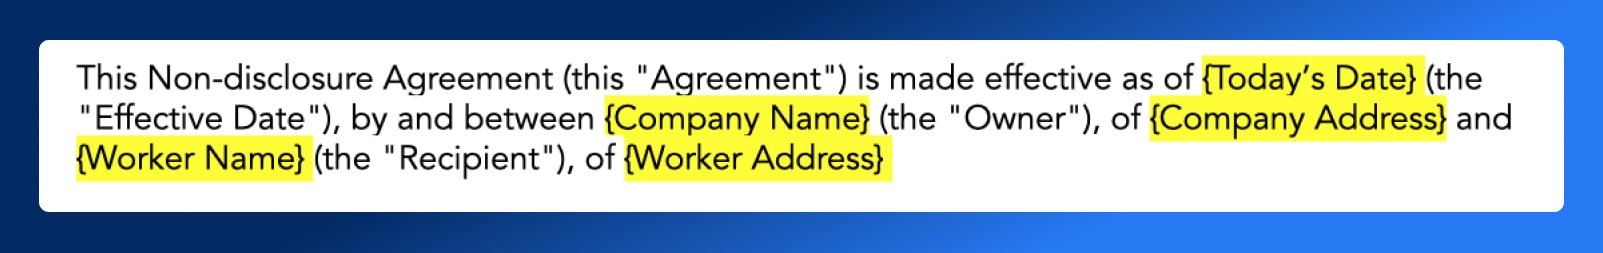 Non Disclosure Agreement - Companies Involved - Wrapbook